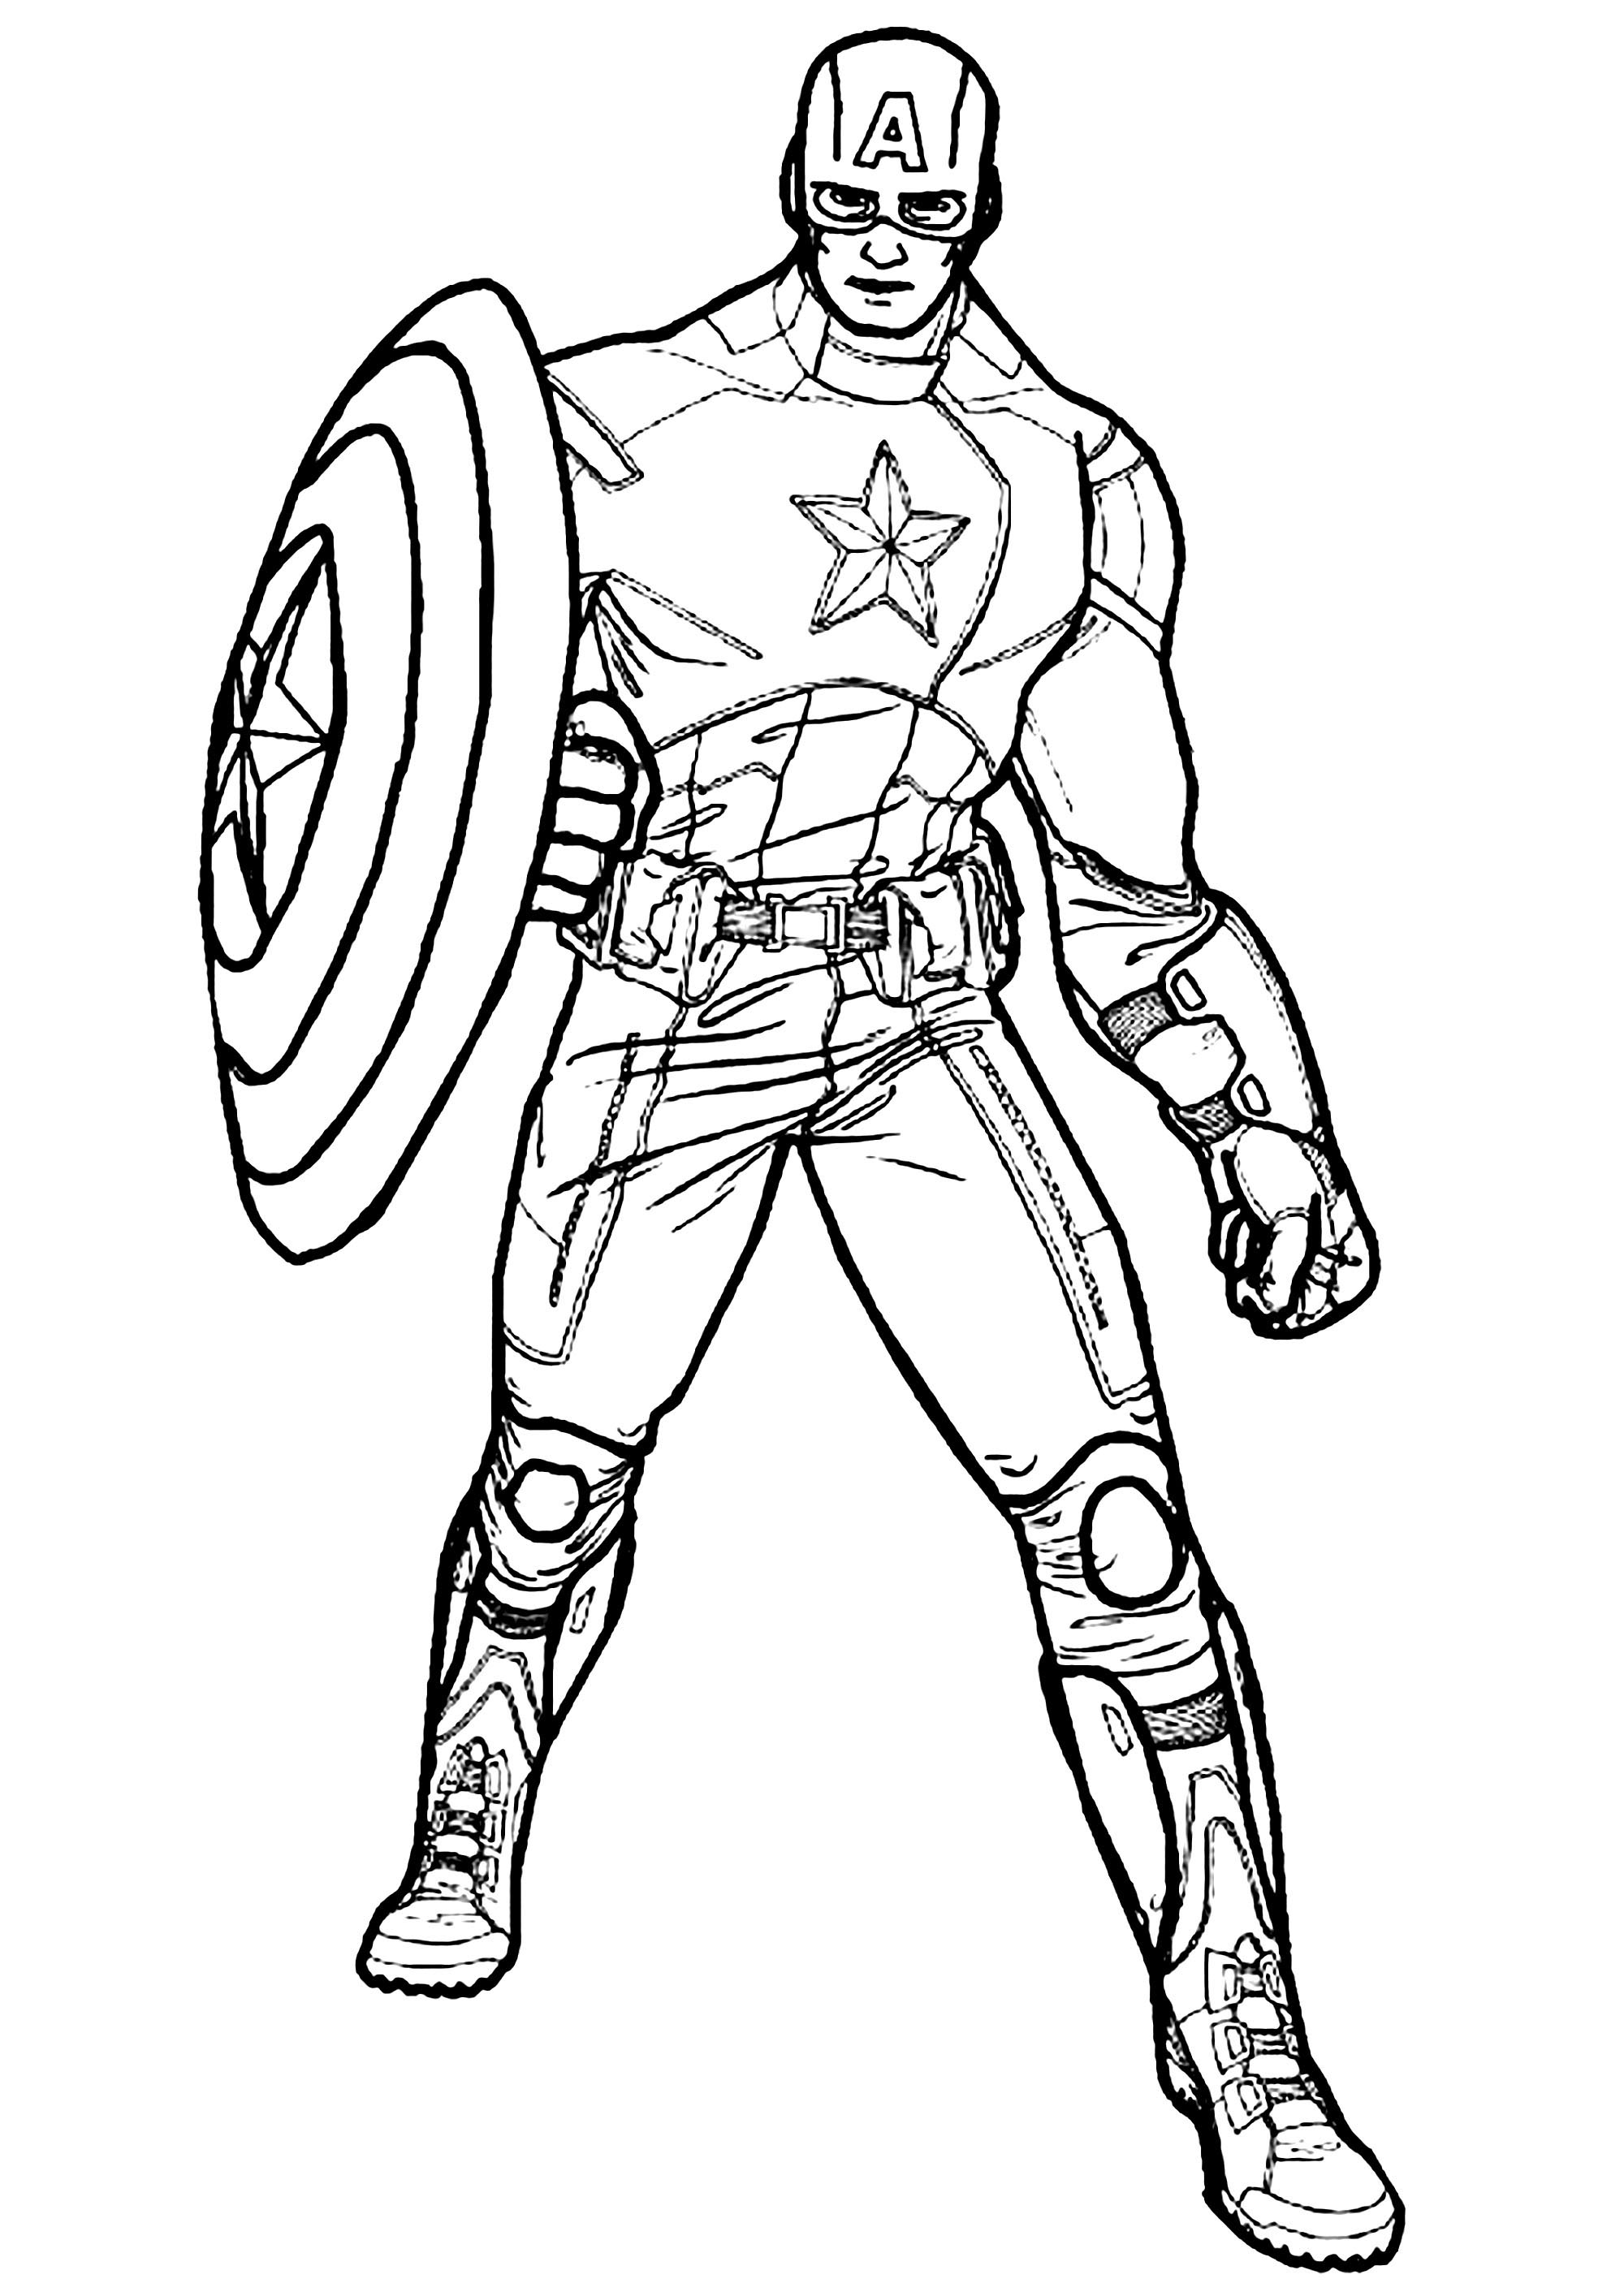 captain america pictures captain america by john byrne marvel captain america captain america pictures